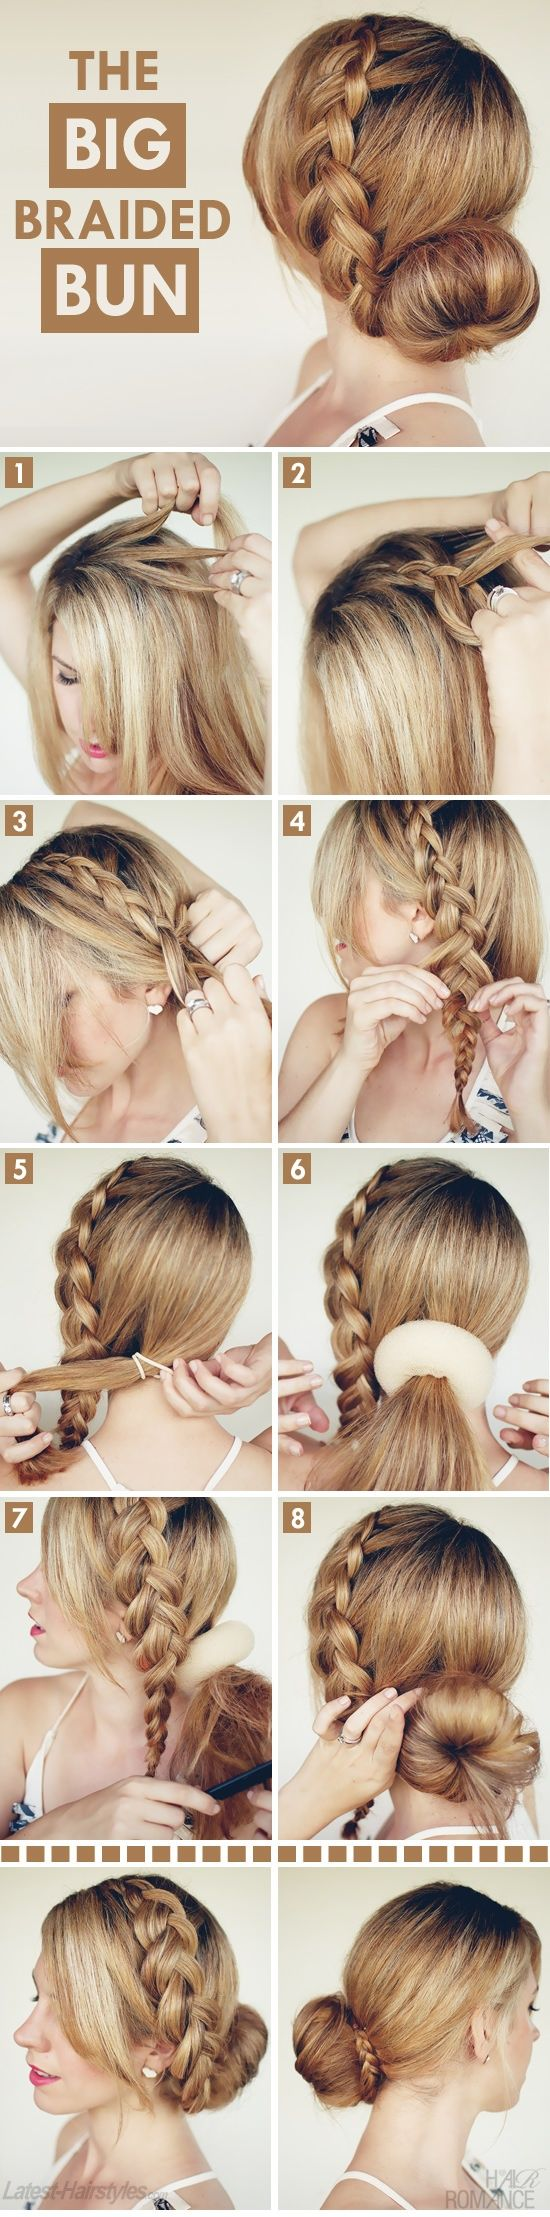 I have never used a bun maker - wonder if it's hard to use. Hairstyle for wedding - maybe